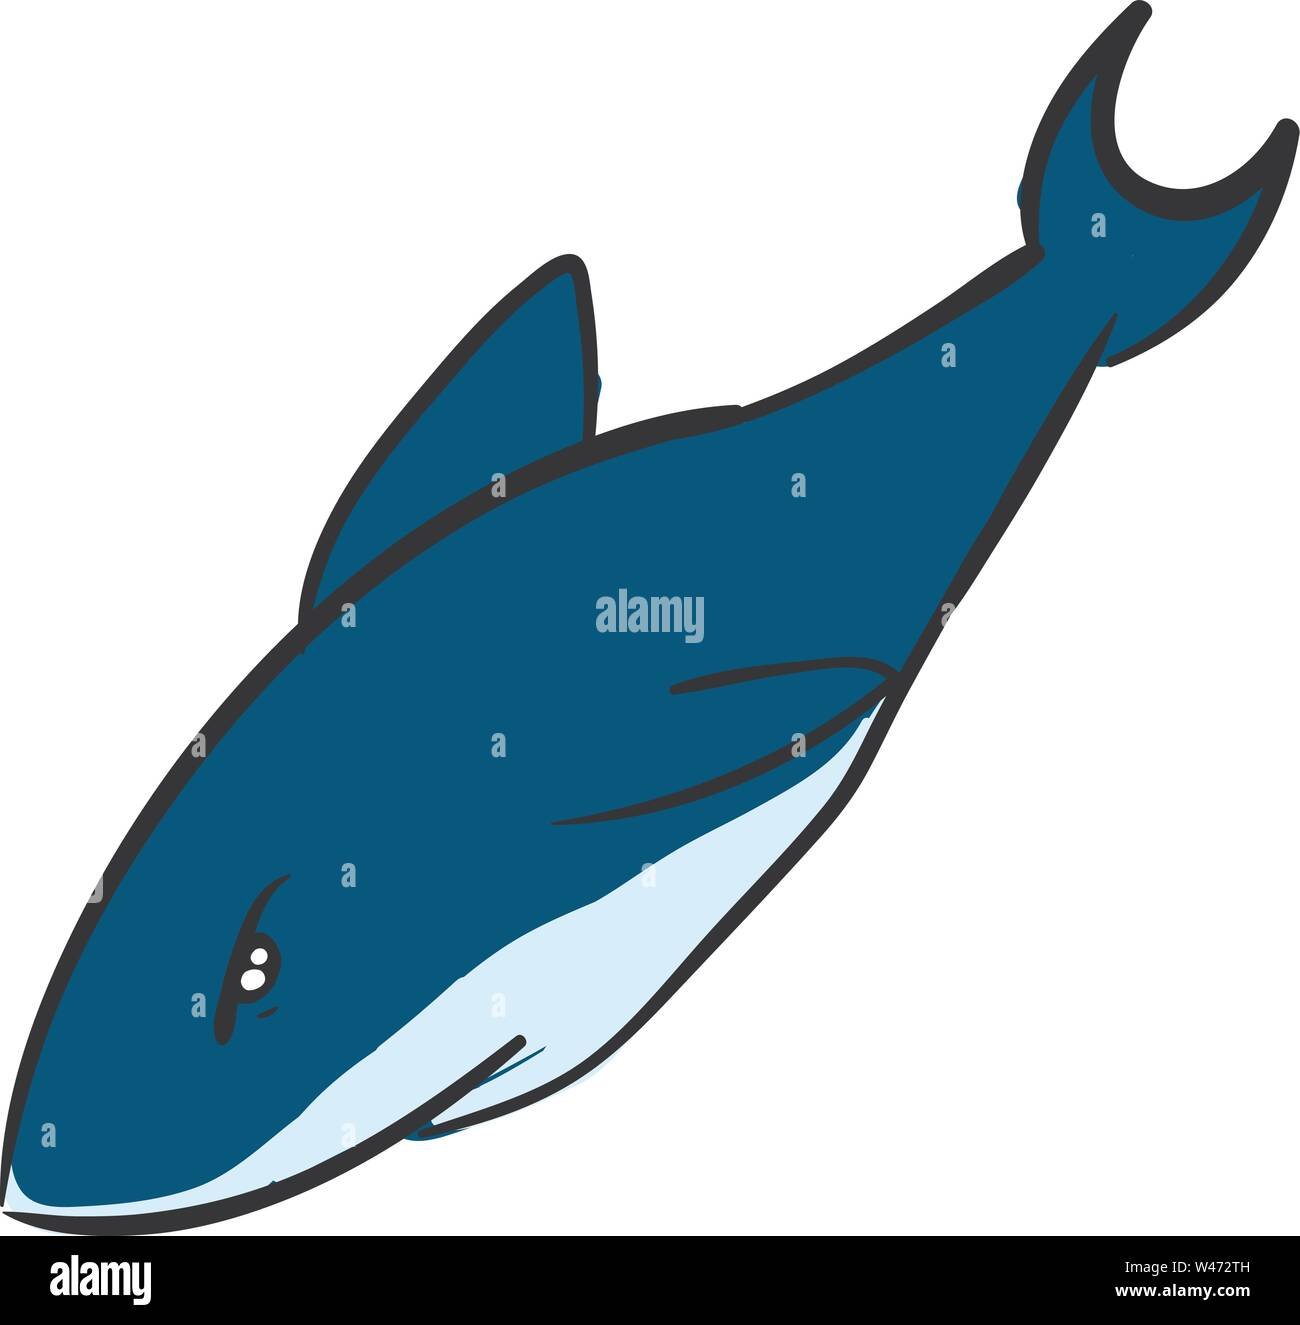 Angry blue shark, illustration, vector on white background. - Stock Image